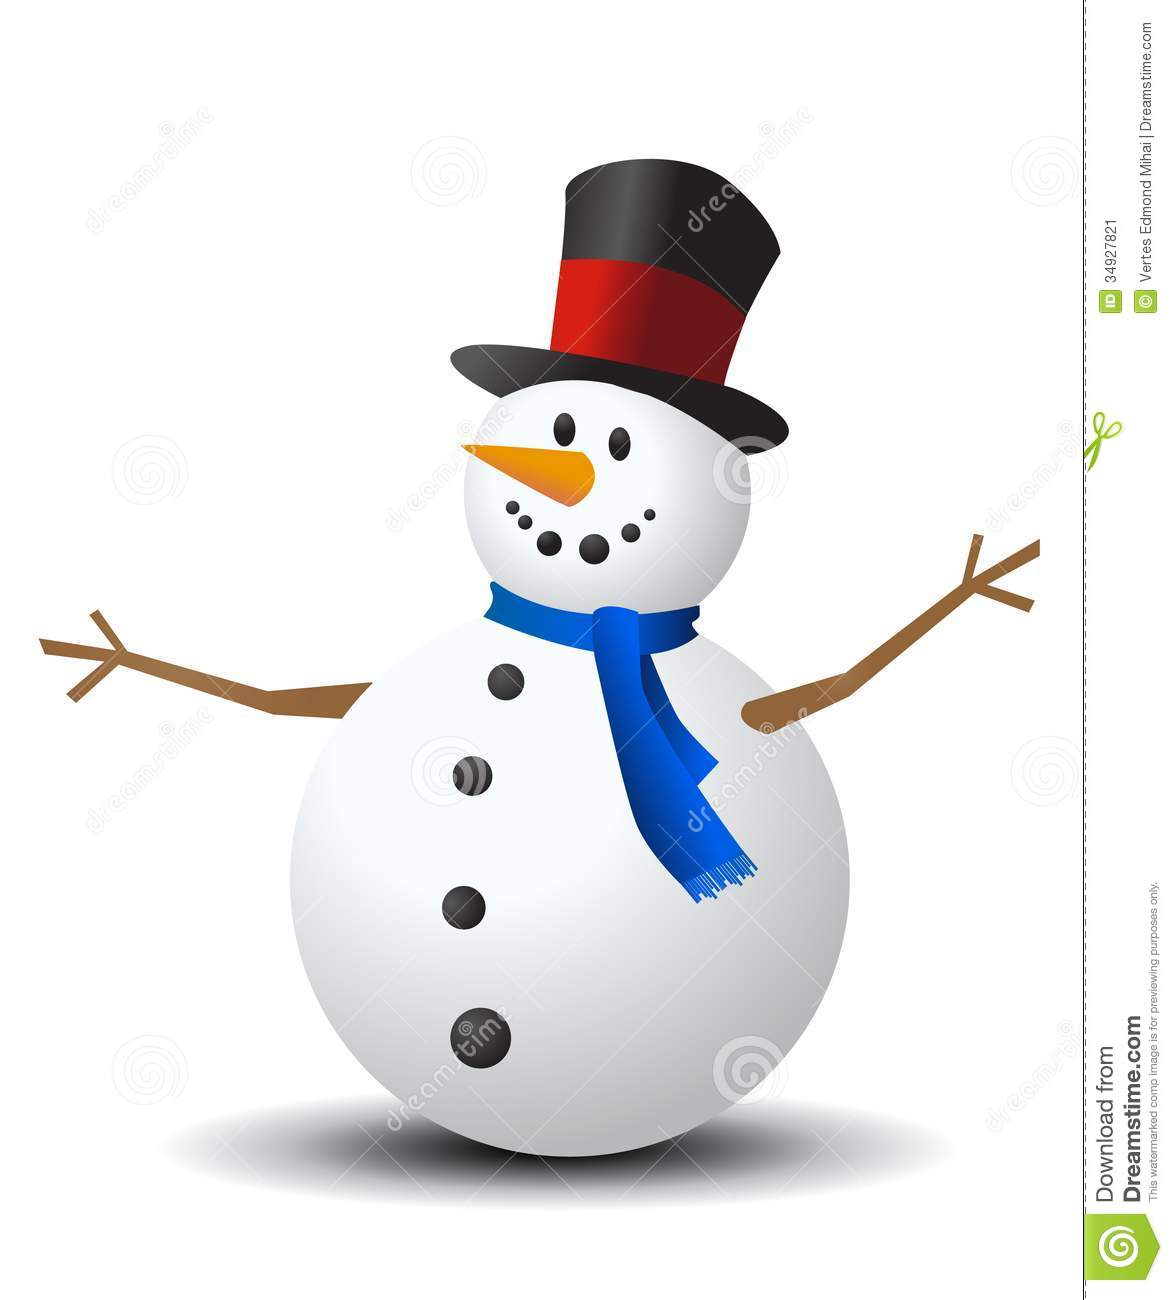 Christmas Snowman Stock Image - Image: 34927821: www.dreamstime.com/stock-image-christmas-snowman-white-background...